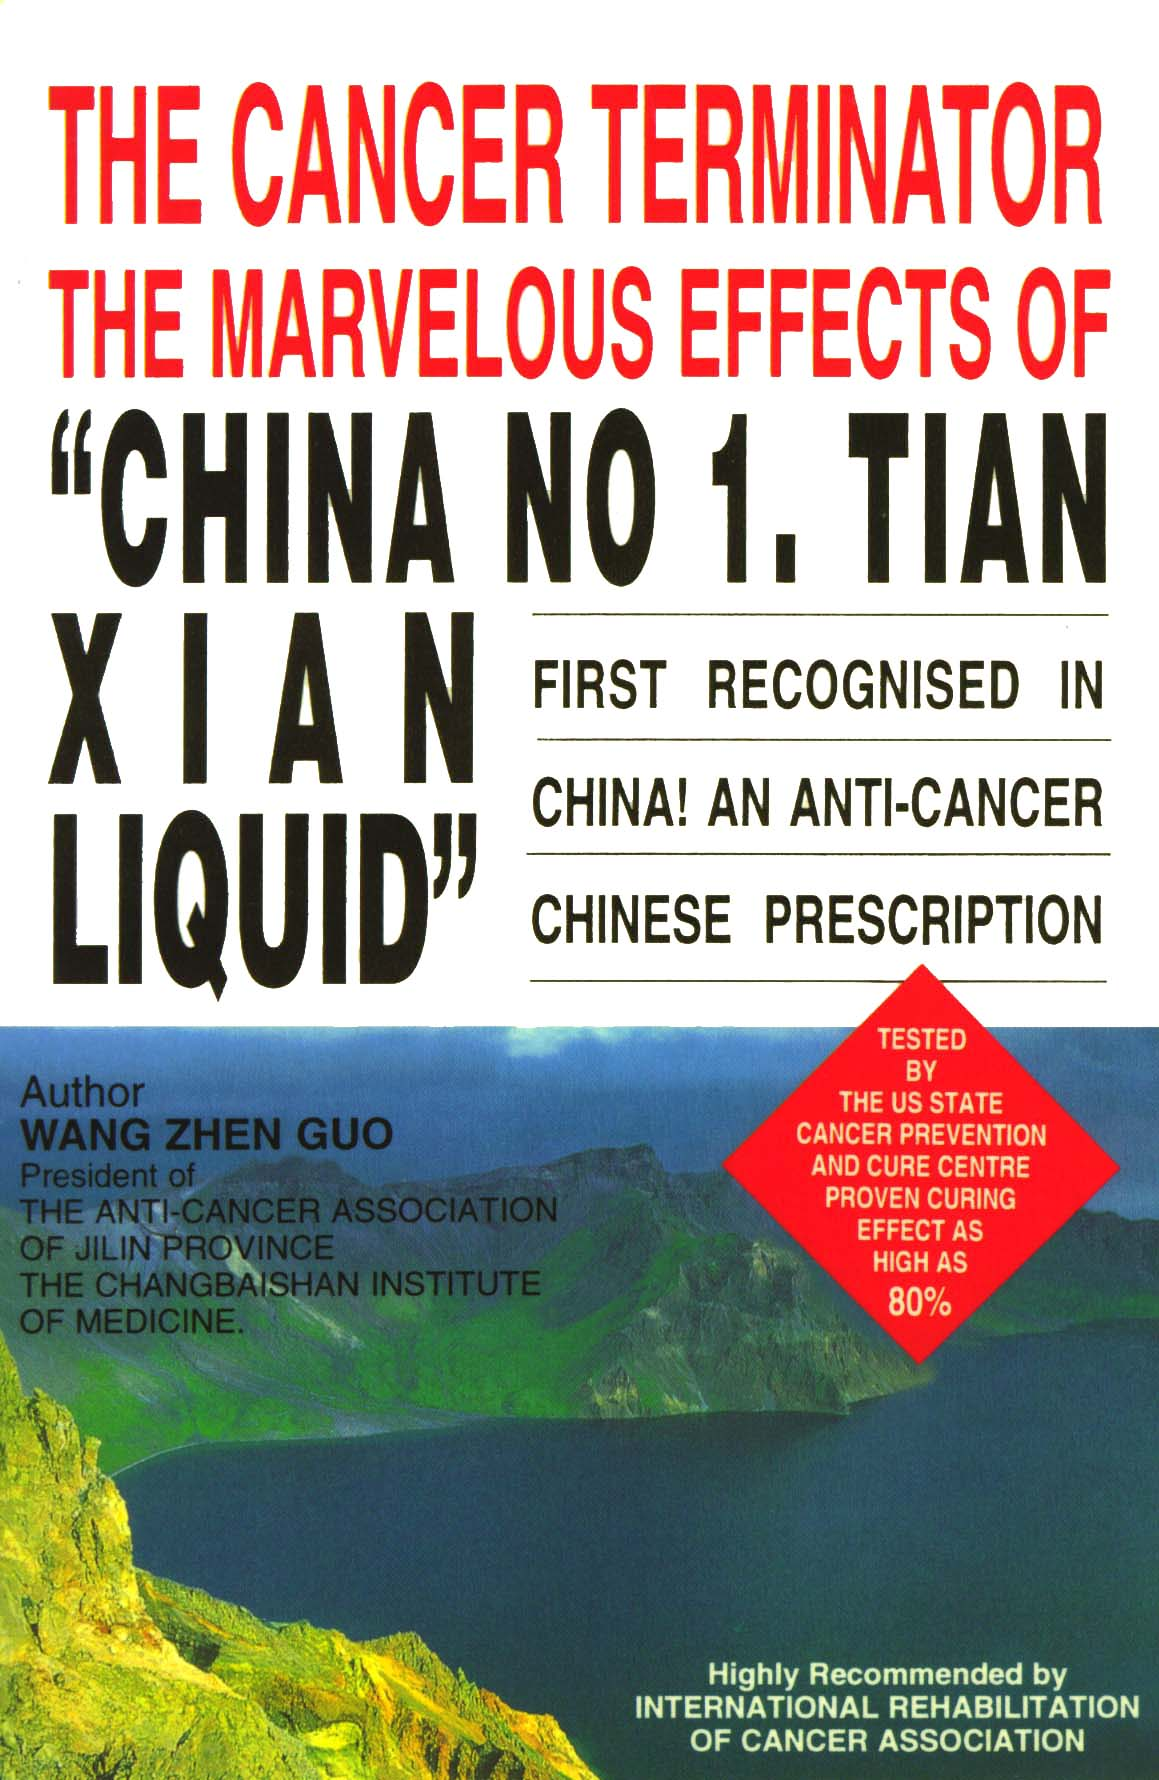 Cancer Terminator - Marvelous Effects of Tian Xian Liquid